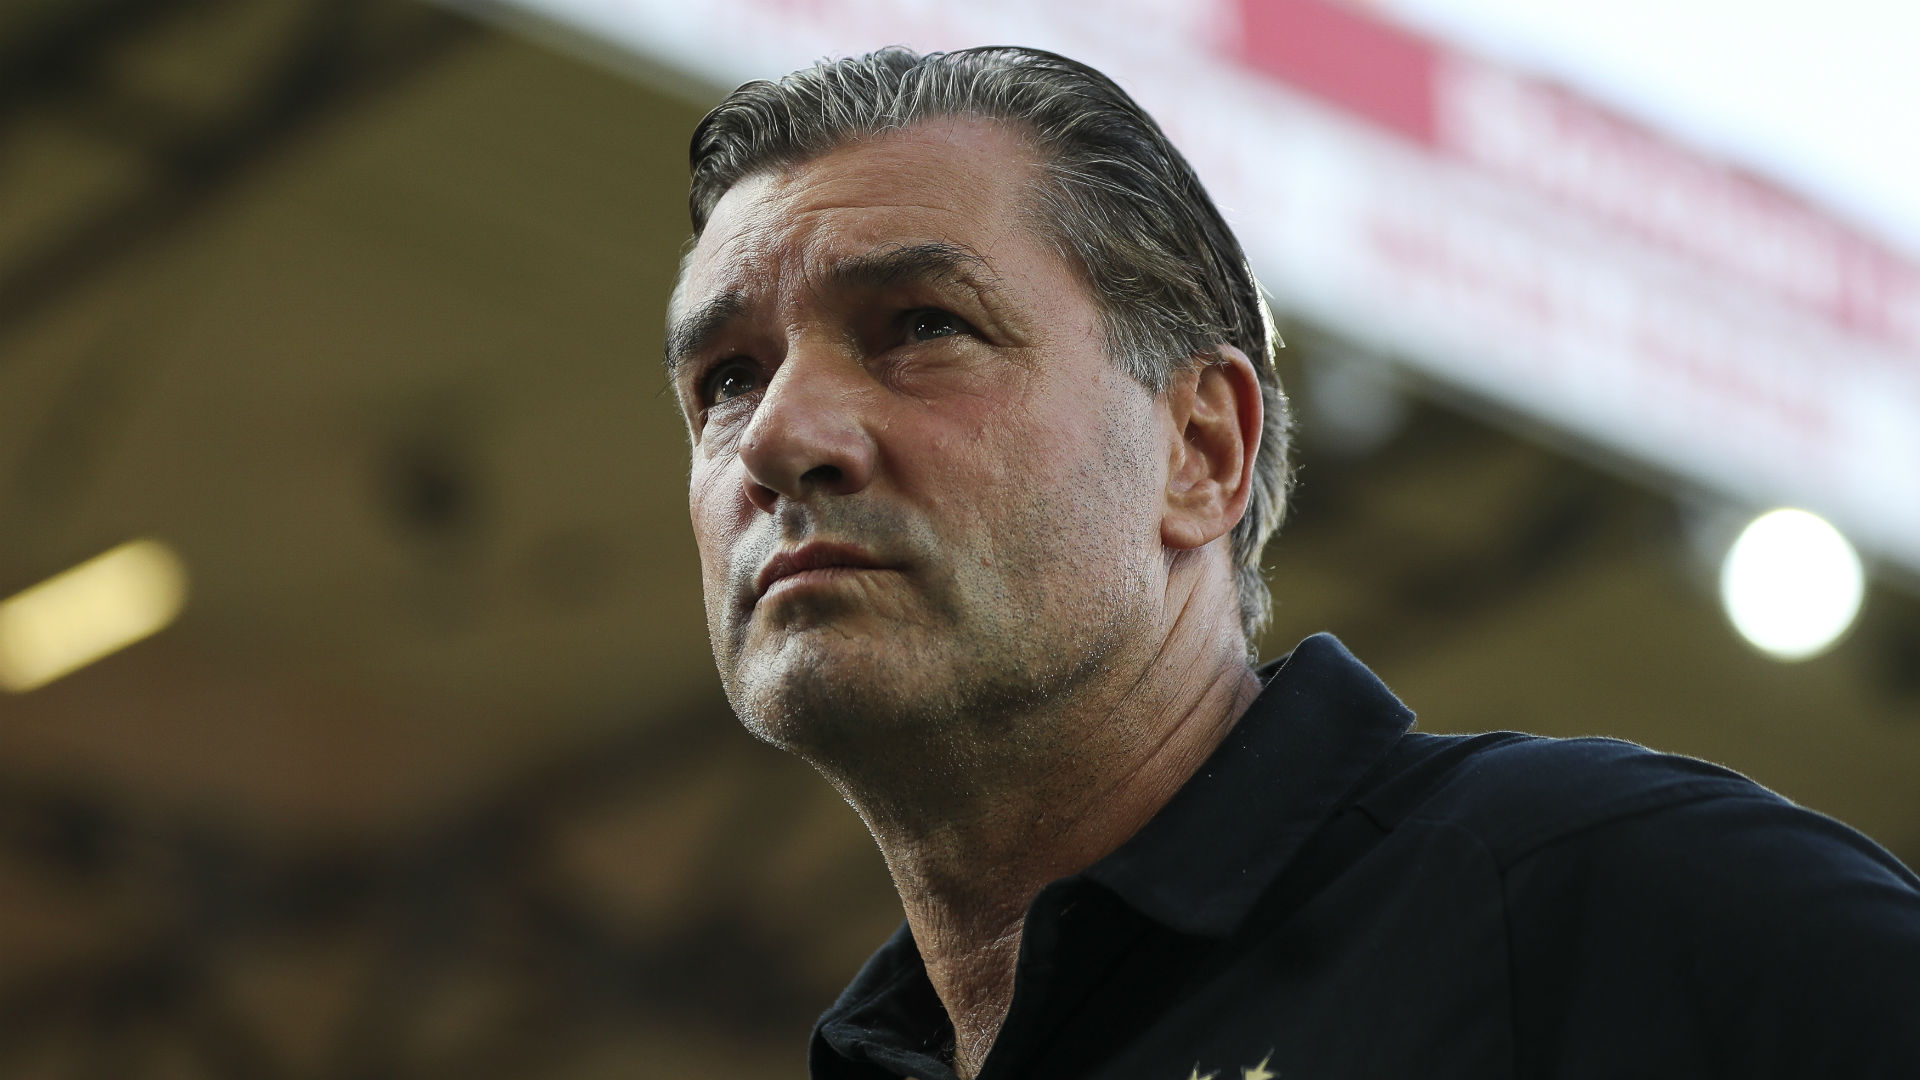 Dortmund can't catch Bayern - Zorc concedes Bundesliga title is decided